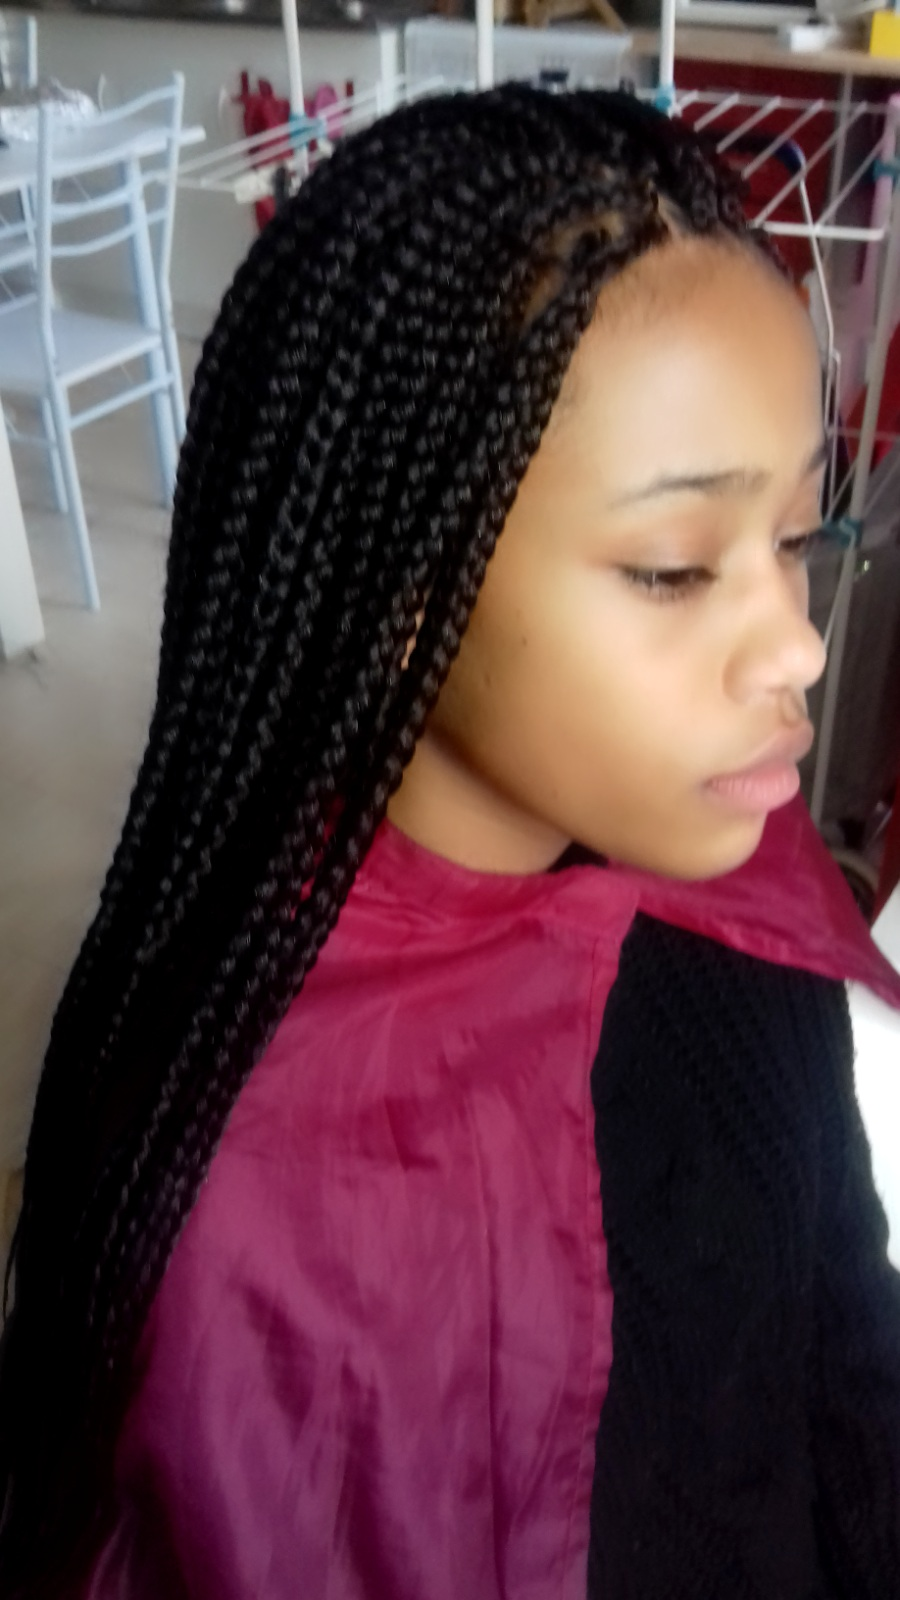 salon de coiffure afro tresse tresses box braids crochet braids vanilles tissages paris 75 77 78 91 92 93 94 95 WFGNPWPC